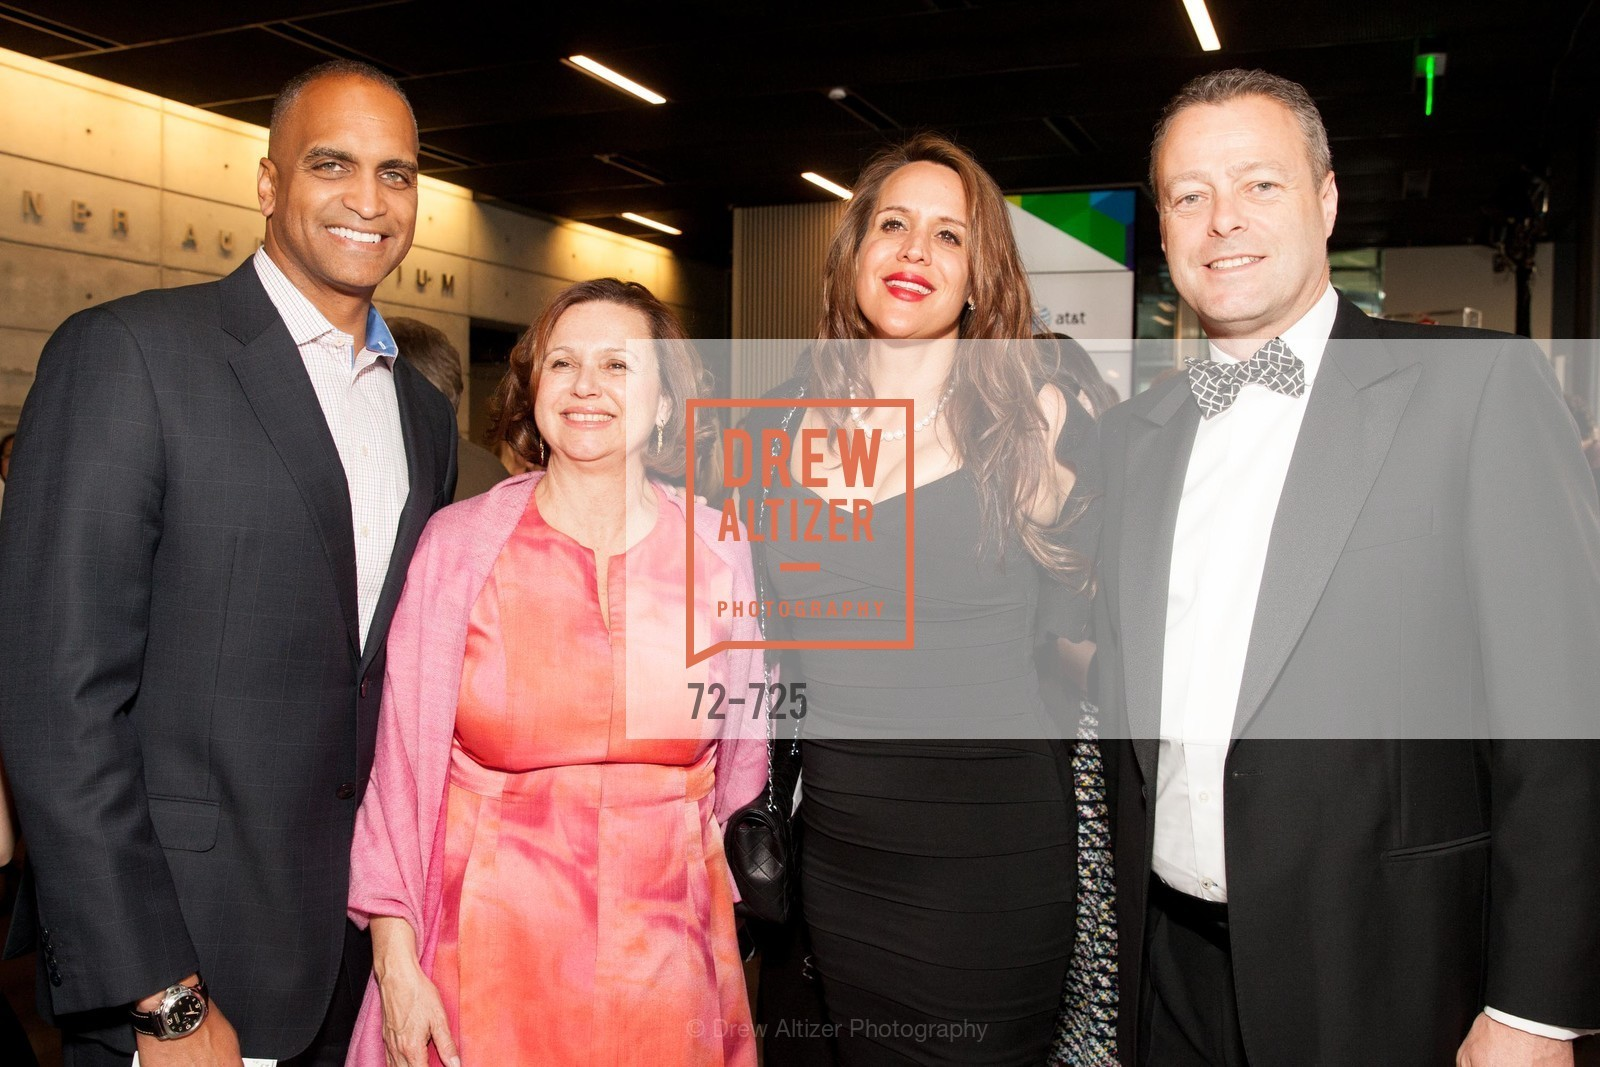 Harvey Anderson, Linda Burch, COMMON SENSE Media Awards 2015, US, May 14th, 2015,Drew Altizer, Drew Altizer Photography, full-service agency, private events, San Francisco photographer, photographer california